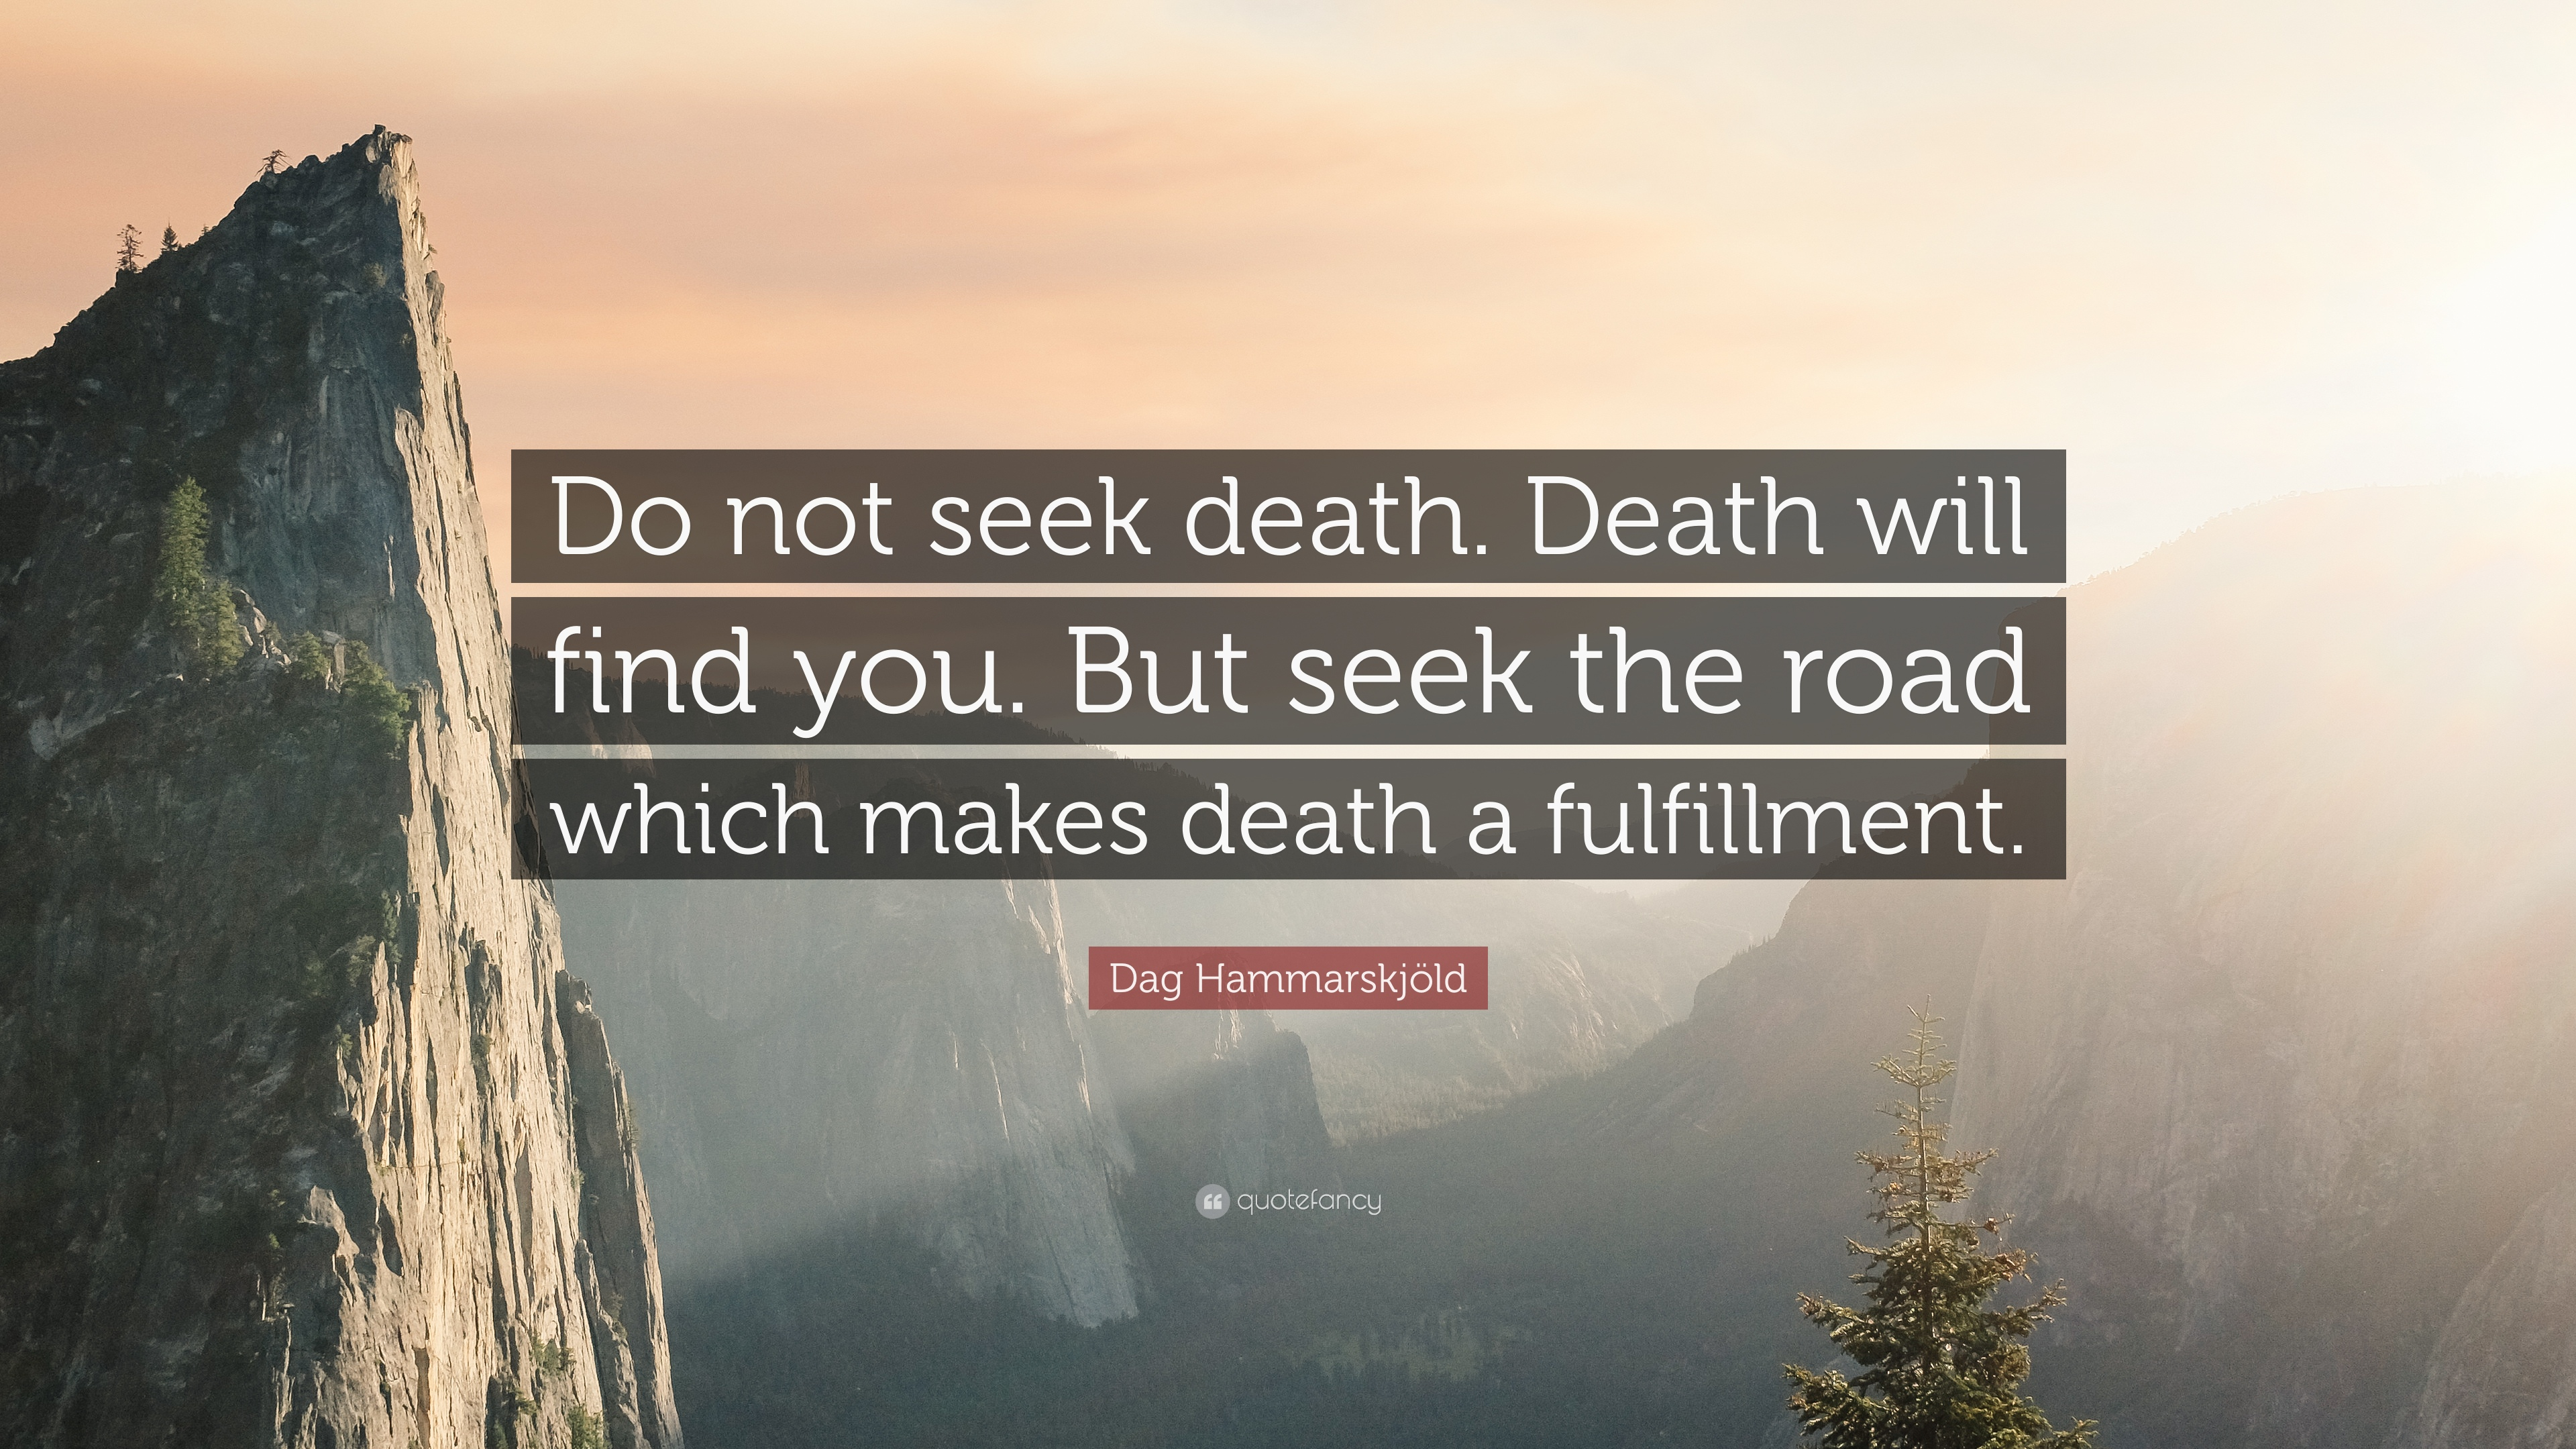 Delicieux Dag Hammarskjöld Quote: U201cDo Not Seek Death. Death Will Find You. But